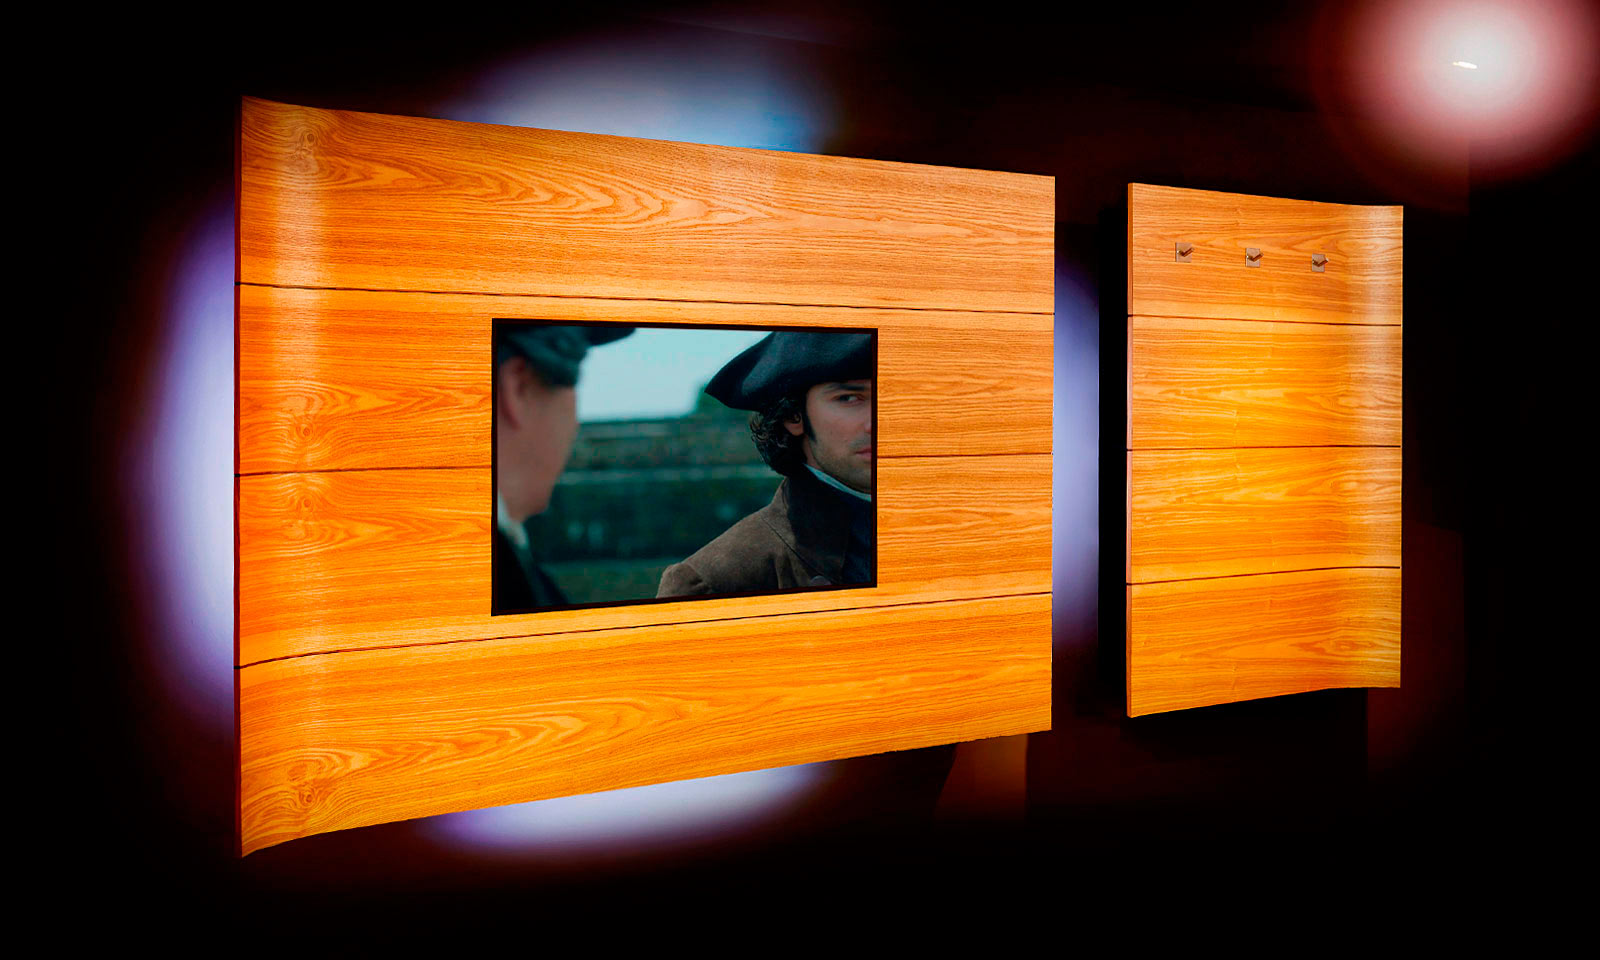 A bespoke, handmade, wall mounted home media centre, complete with hidden black shelving and LED lighting. Manufactured from curved Ash veneer, designed and installed by Mounts Hill Woodcraft.